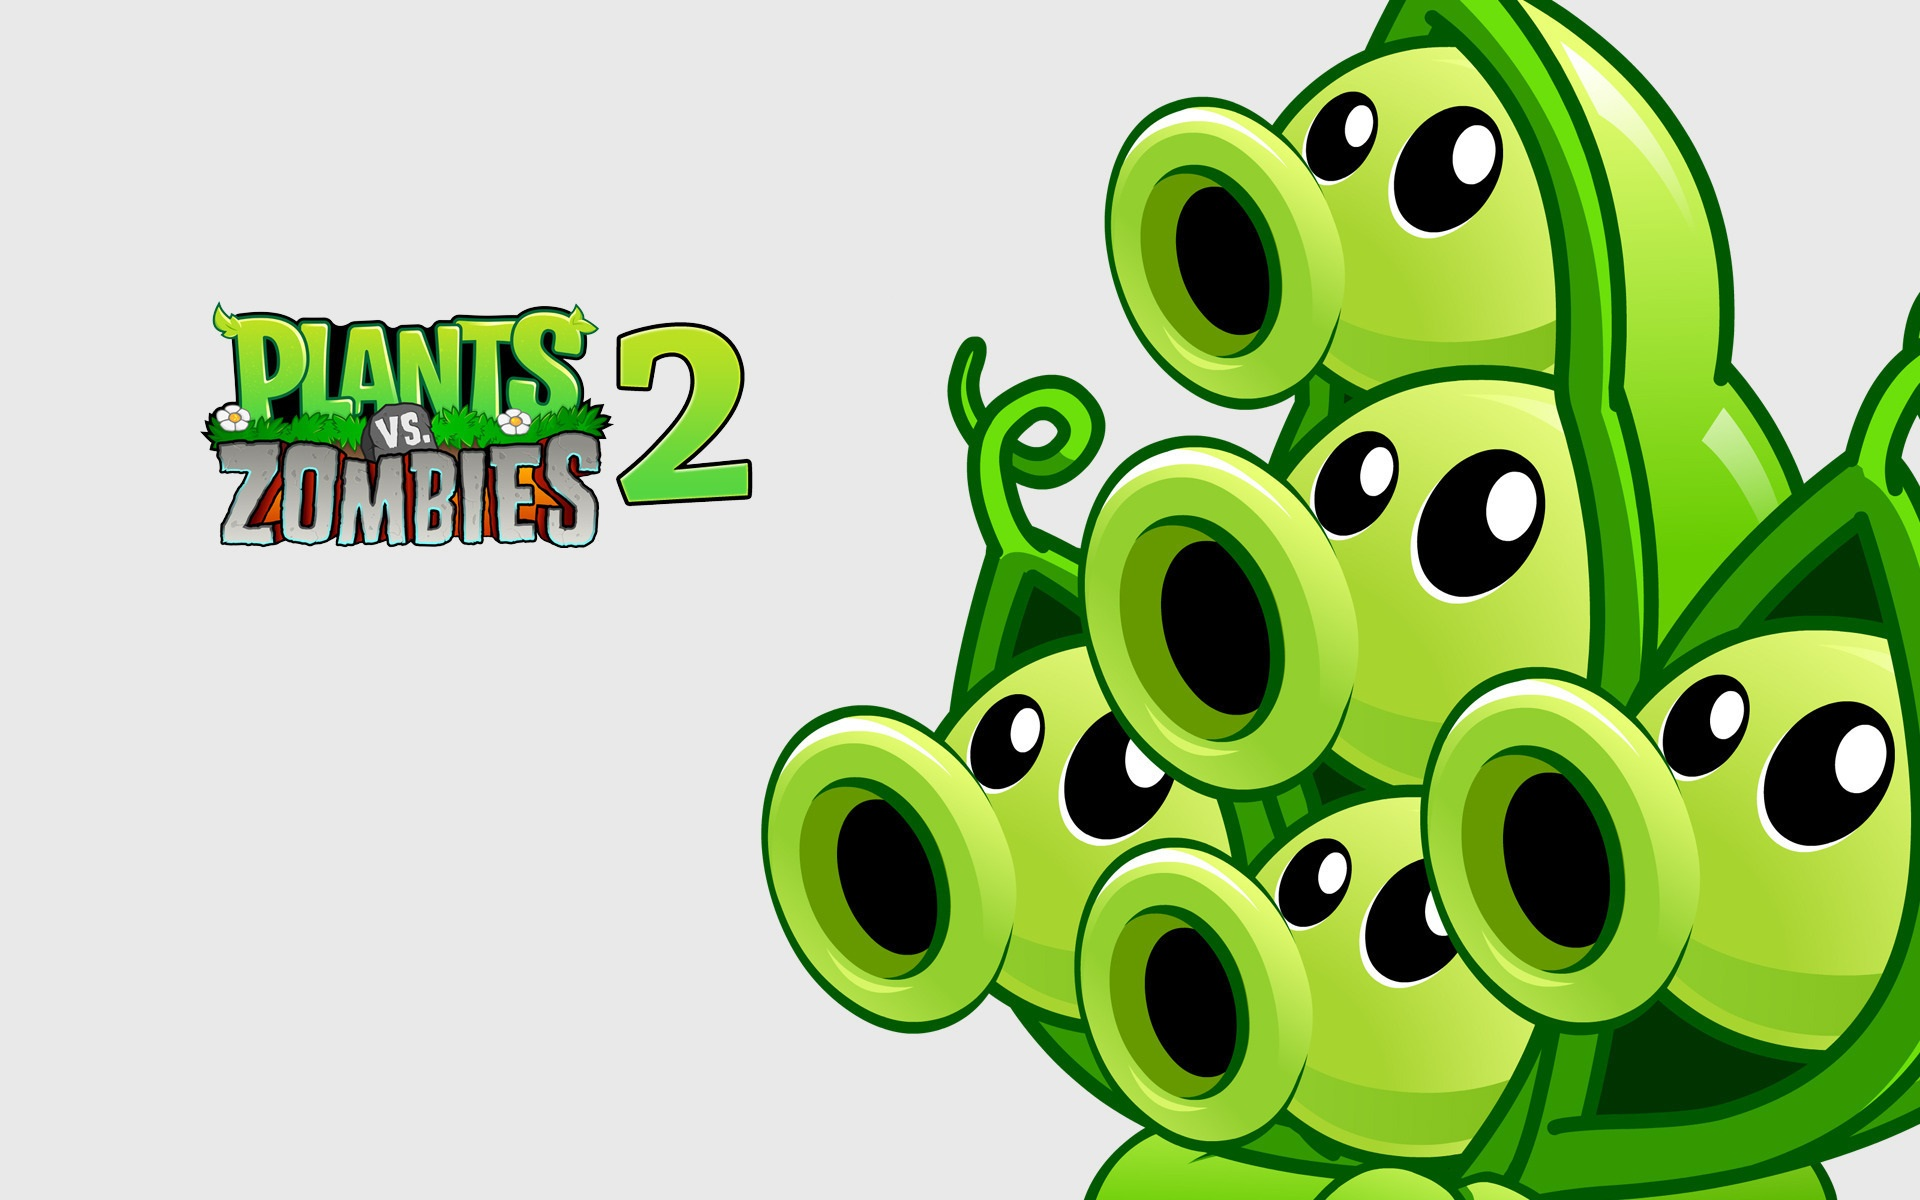 Plants vs zombies wallpapers best wallpapers for Plante vs zombie